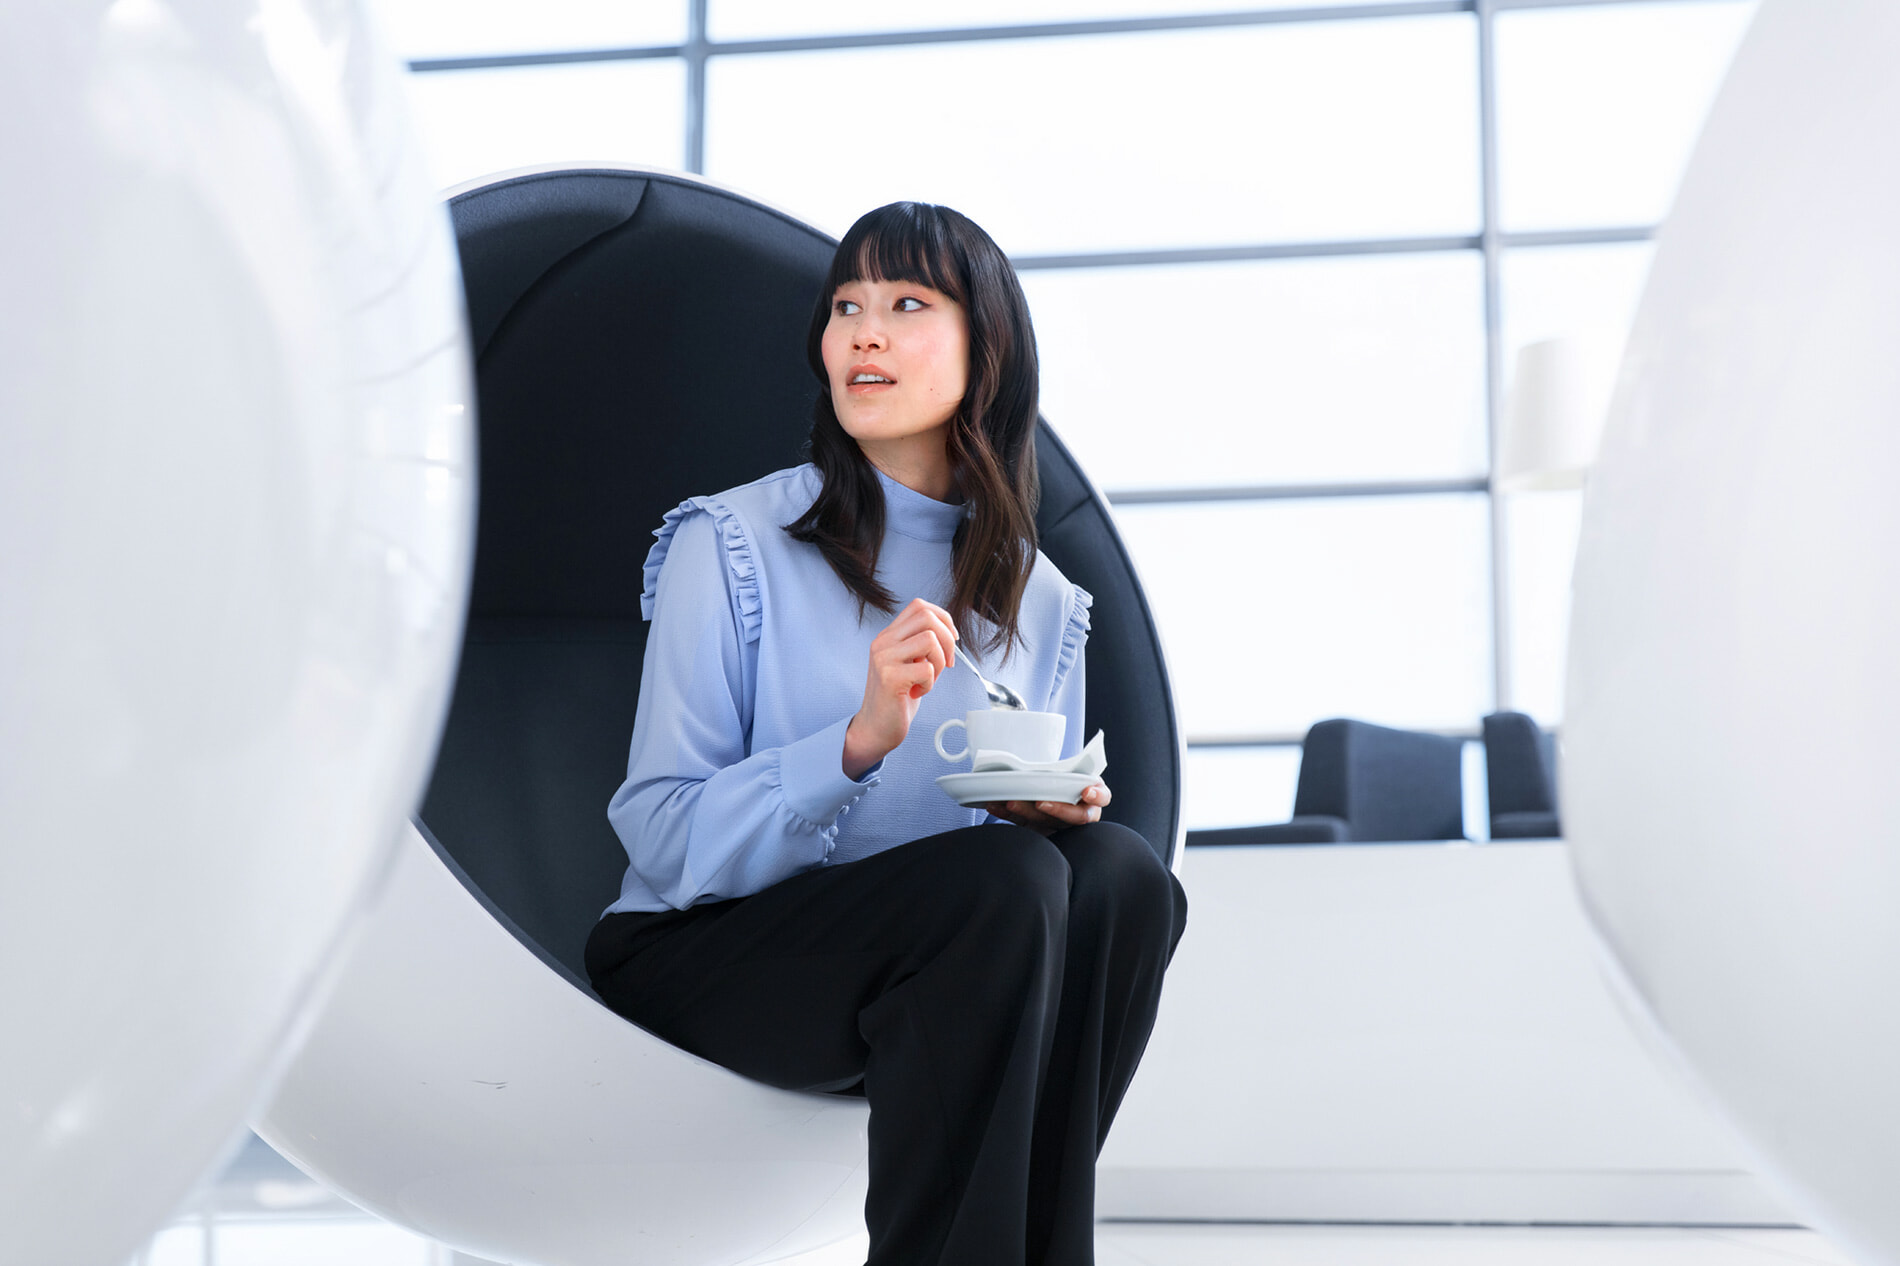 Asian woman resting coffee on her lap on a Eero Aarnio Ball chair at Finnair lounge